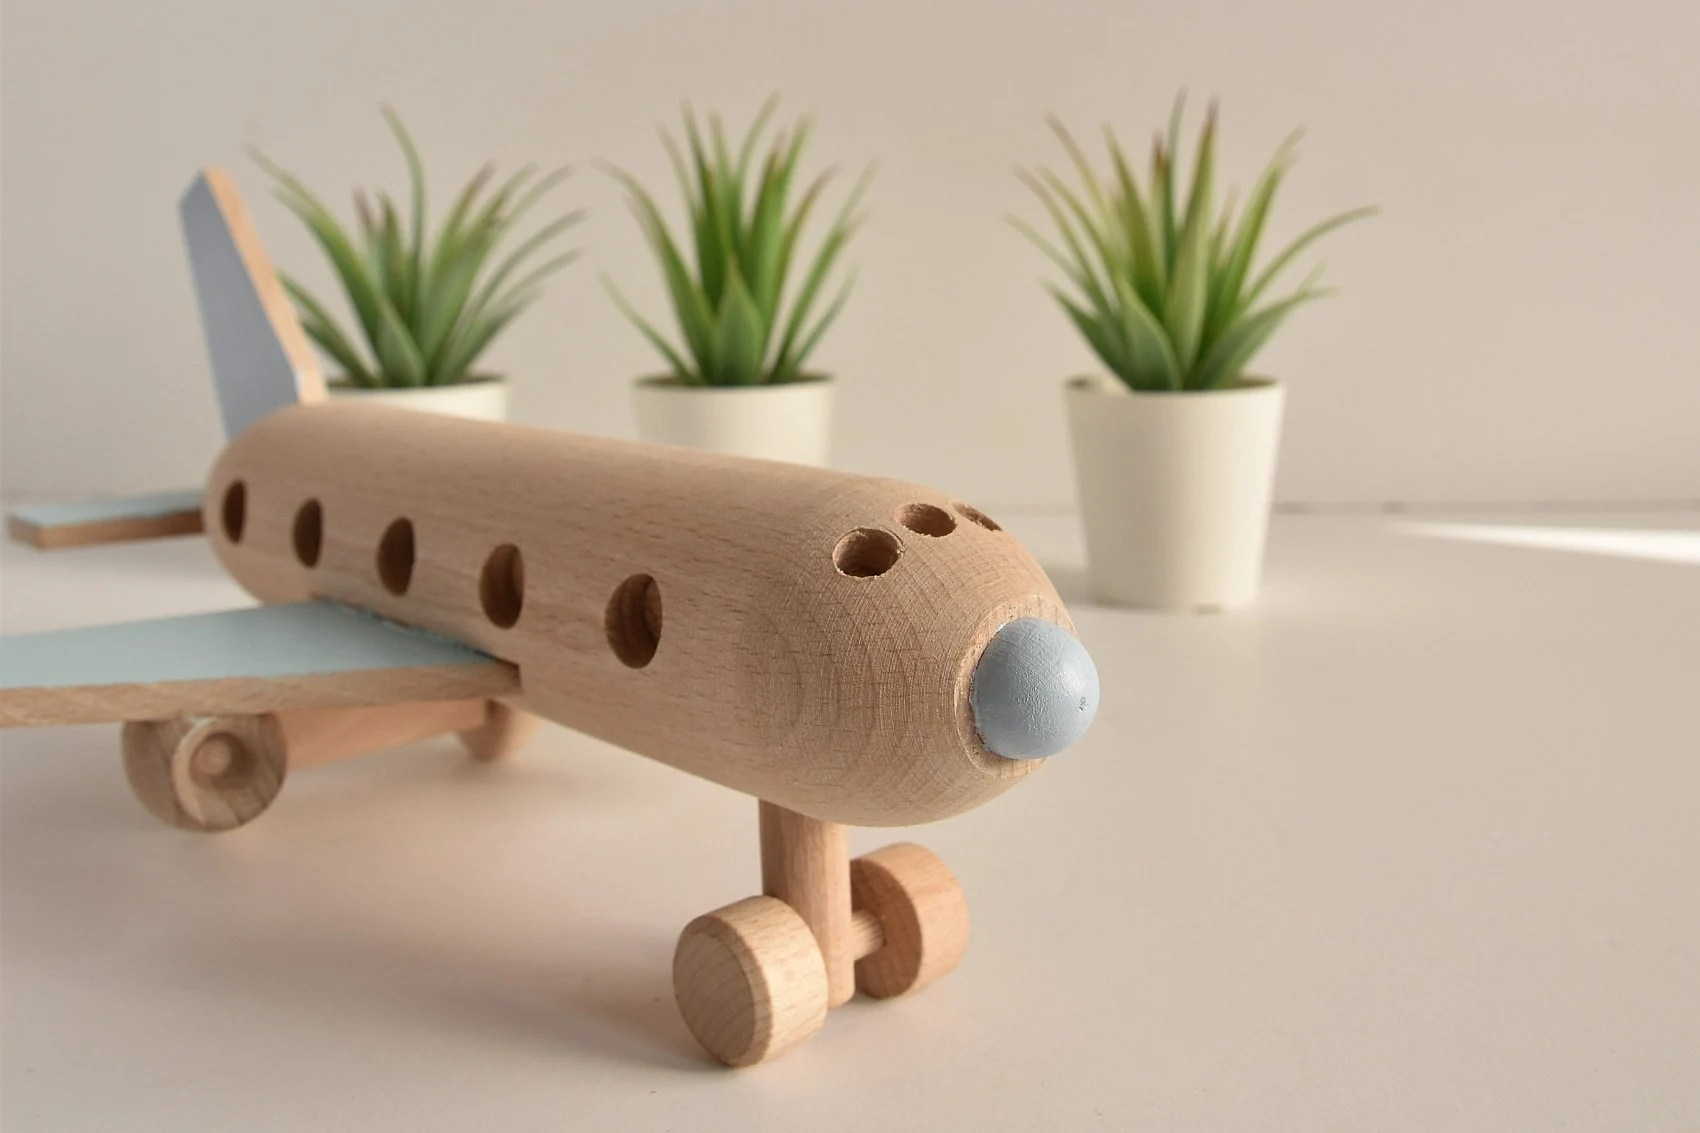 Wooden airplane  Wooden toys  Eco toy  Airplane decor  image 2